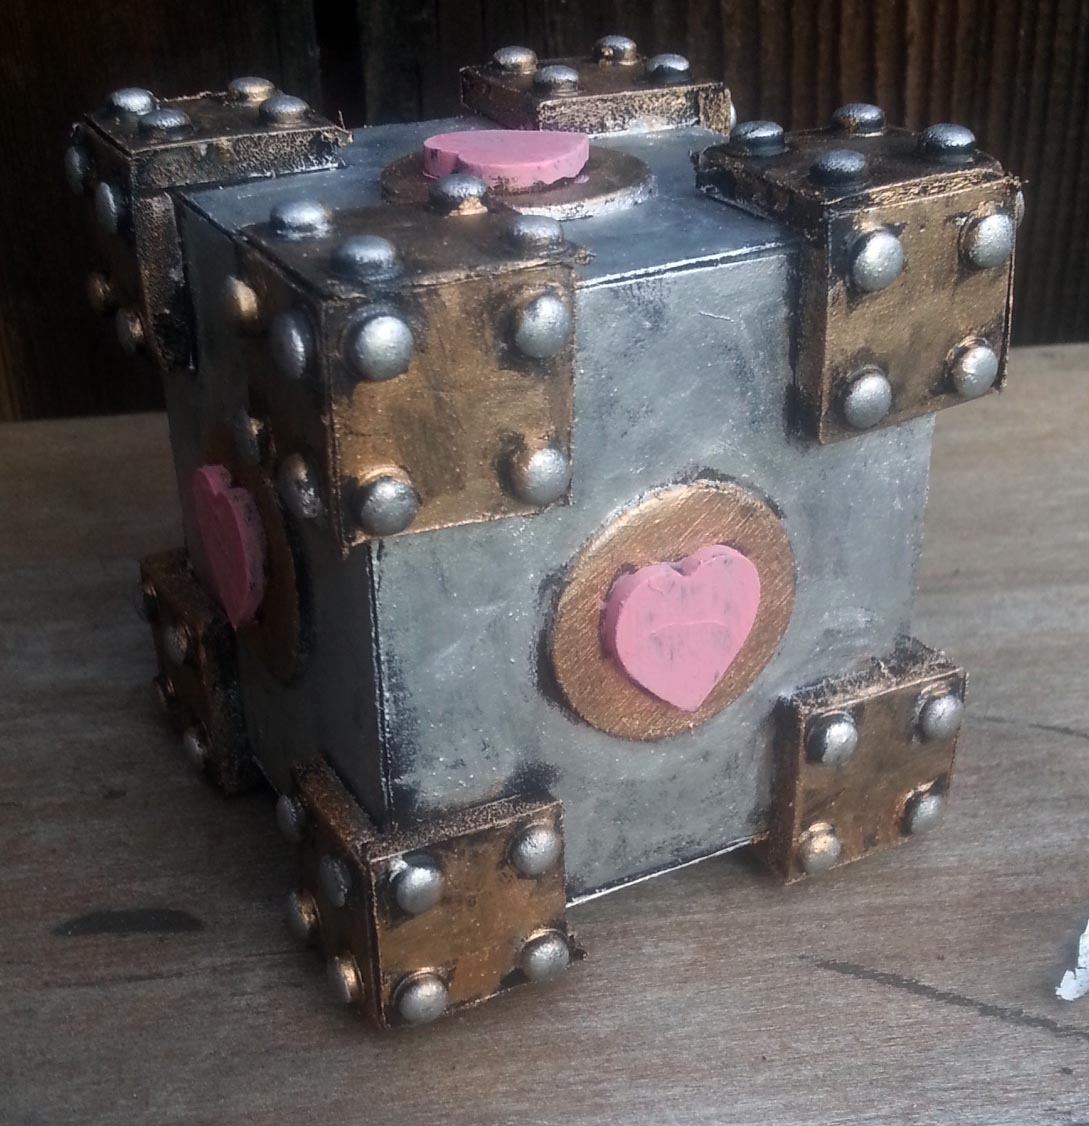 The original prototype for the cubes became Professor C. Johnson's Patented Companionship Cube which now lives with my friend Five.